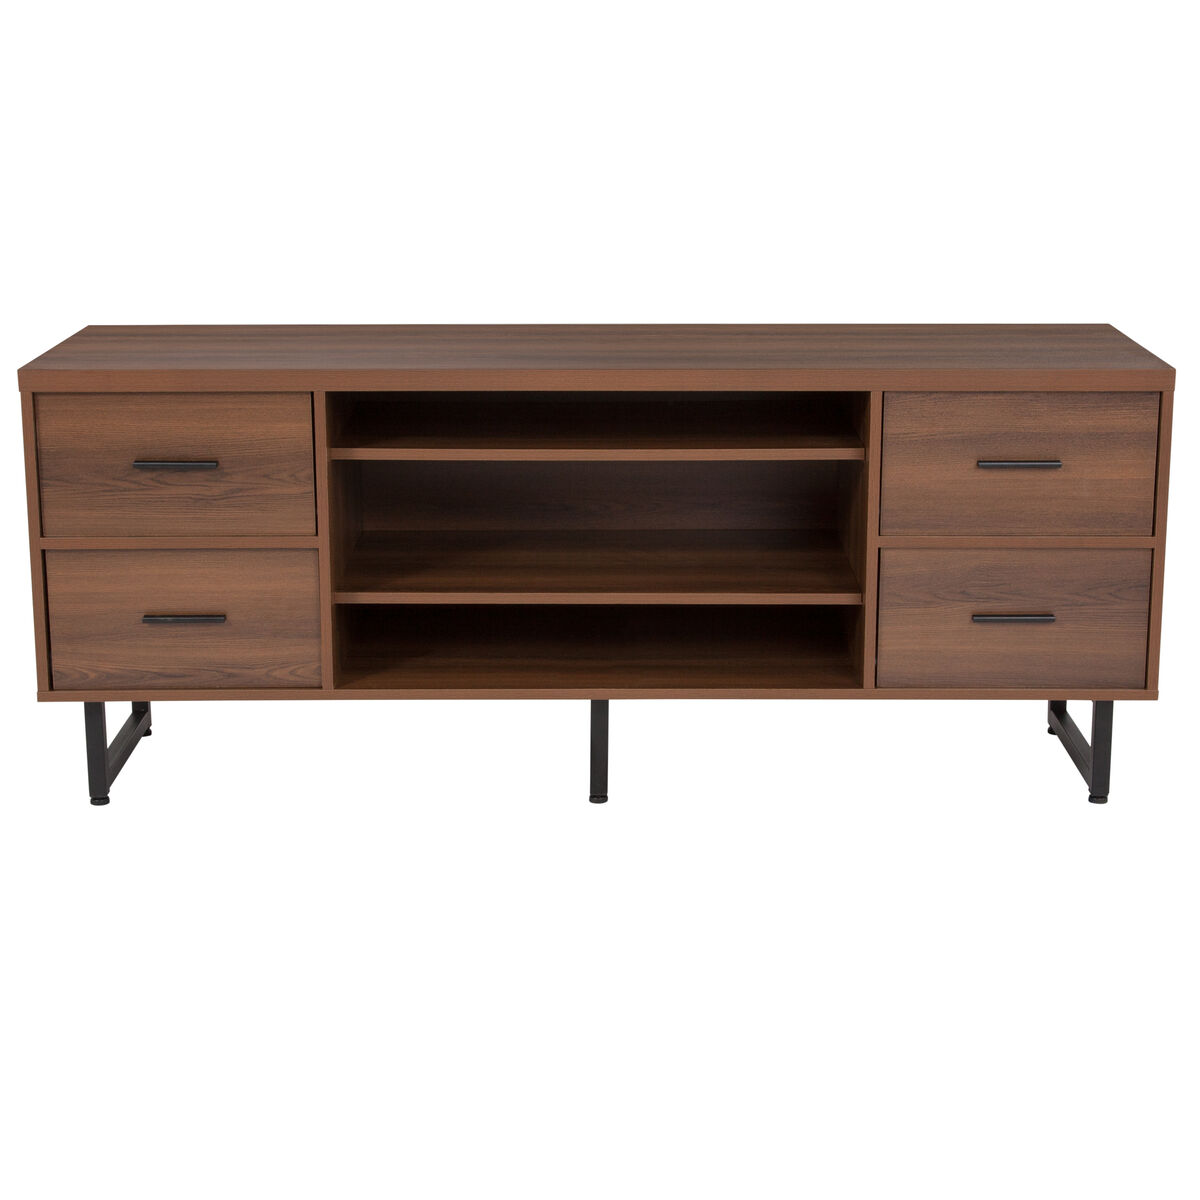 Rustic Tv Stand With Drawers Nan Jn 21743tr Gg Bizchair Com